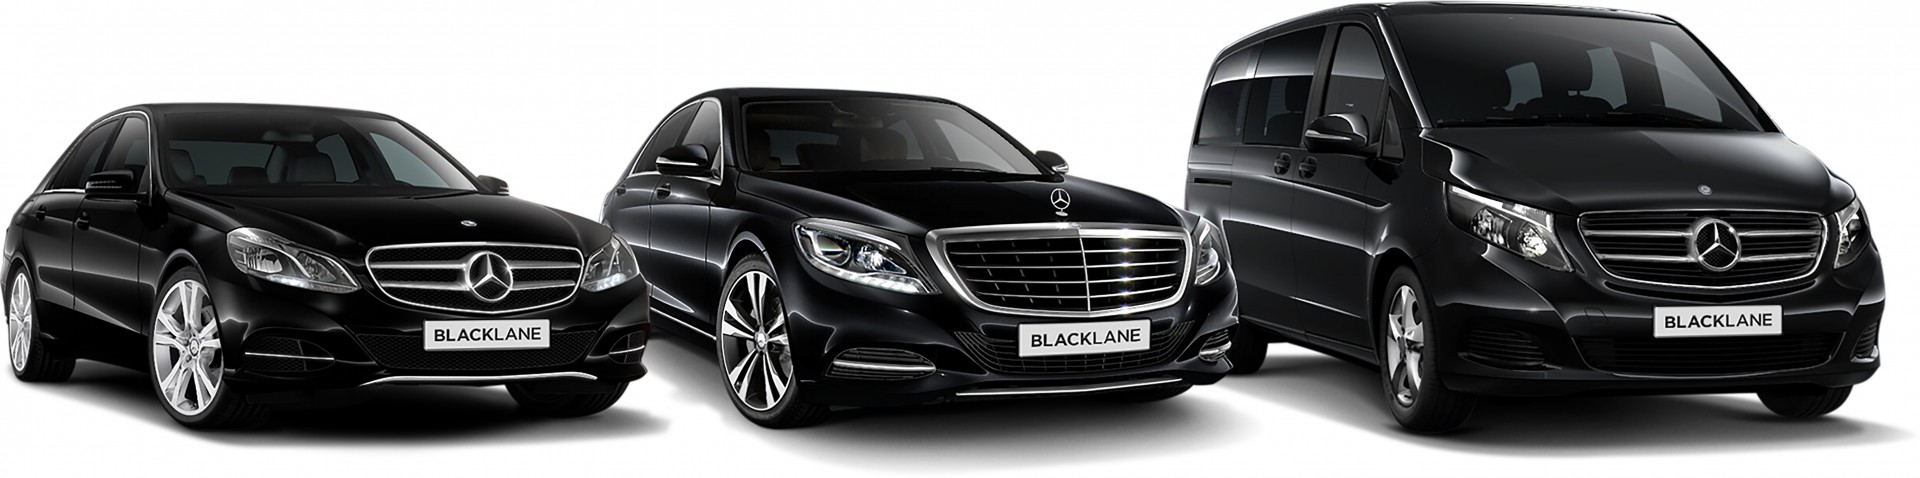 Daimler vergroot belang in professionele chauffeursservice Blacklane